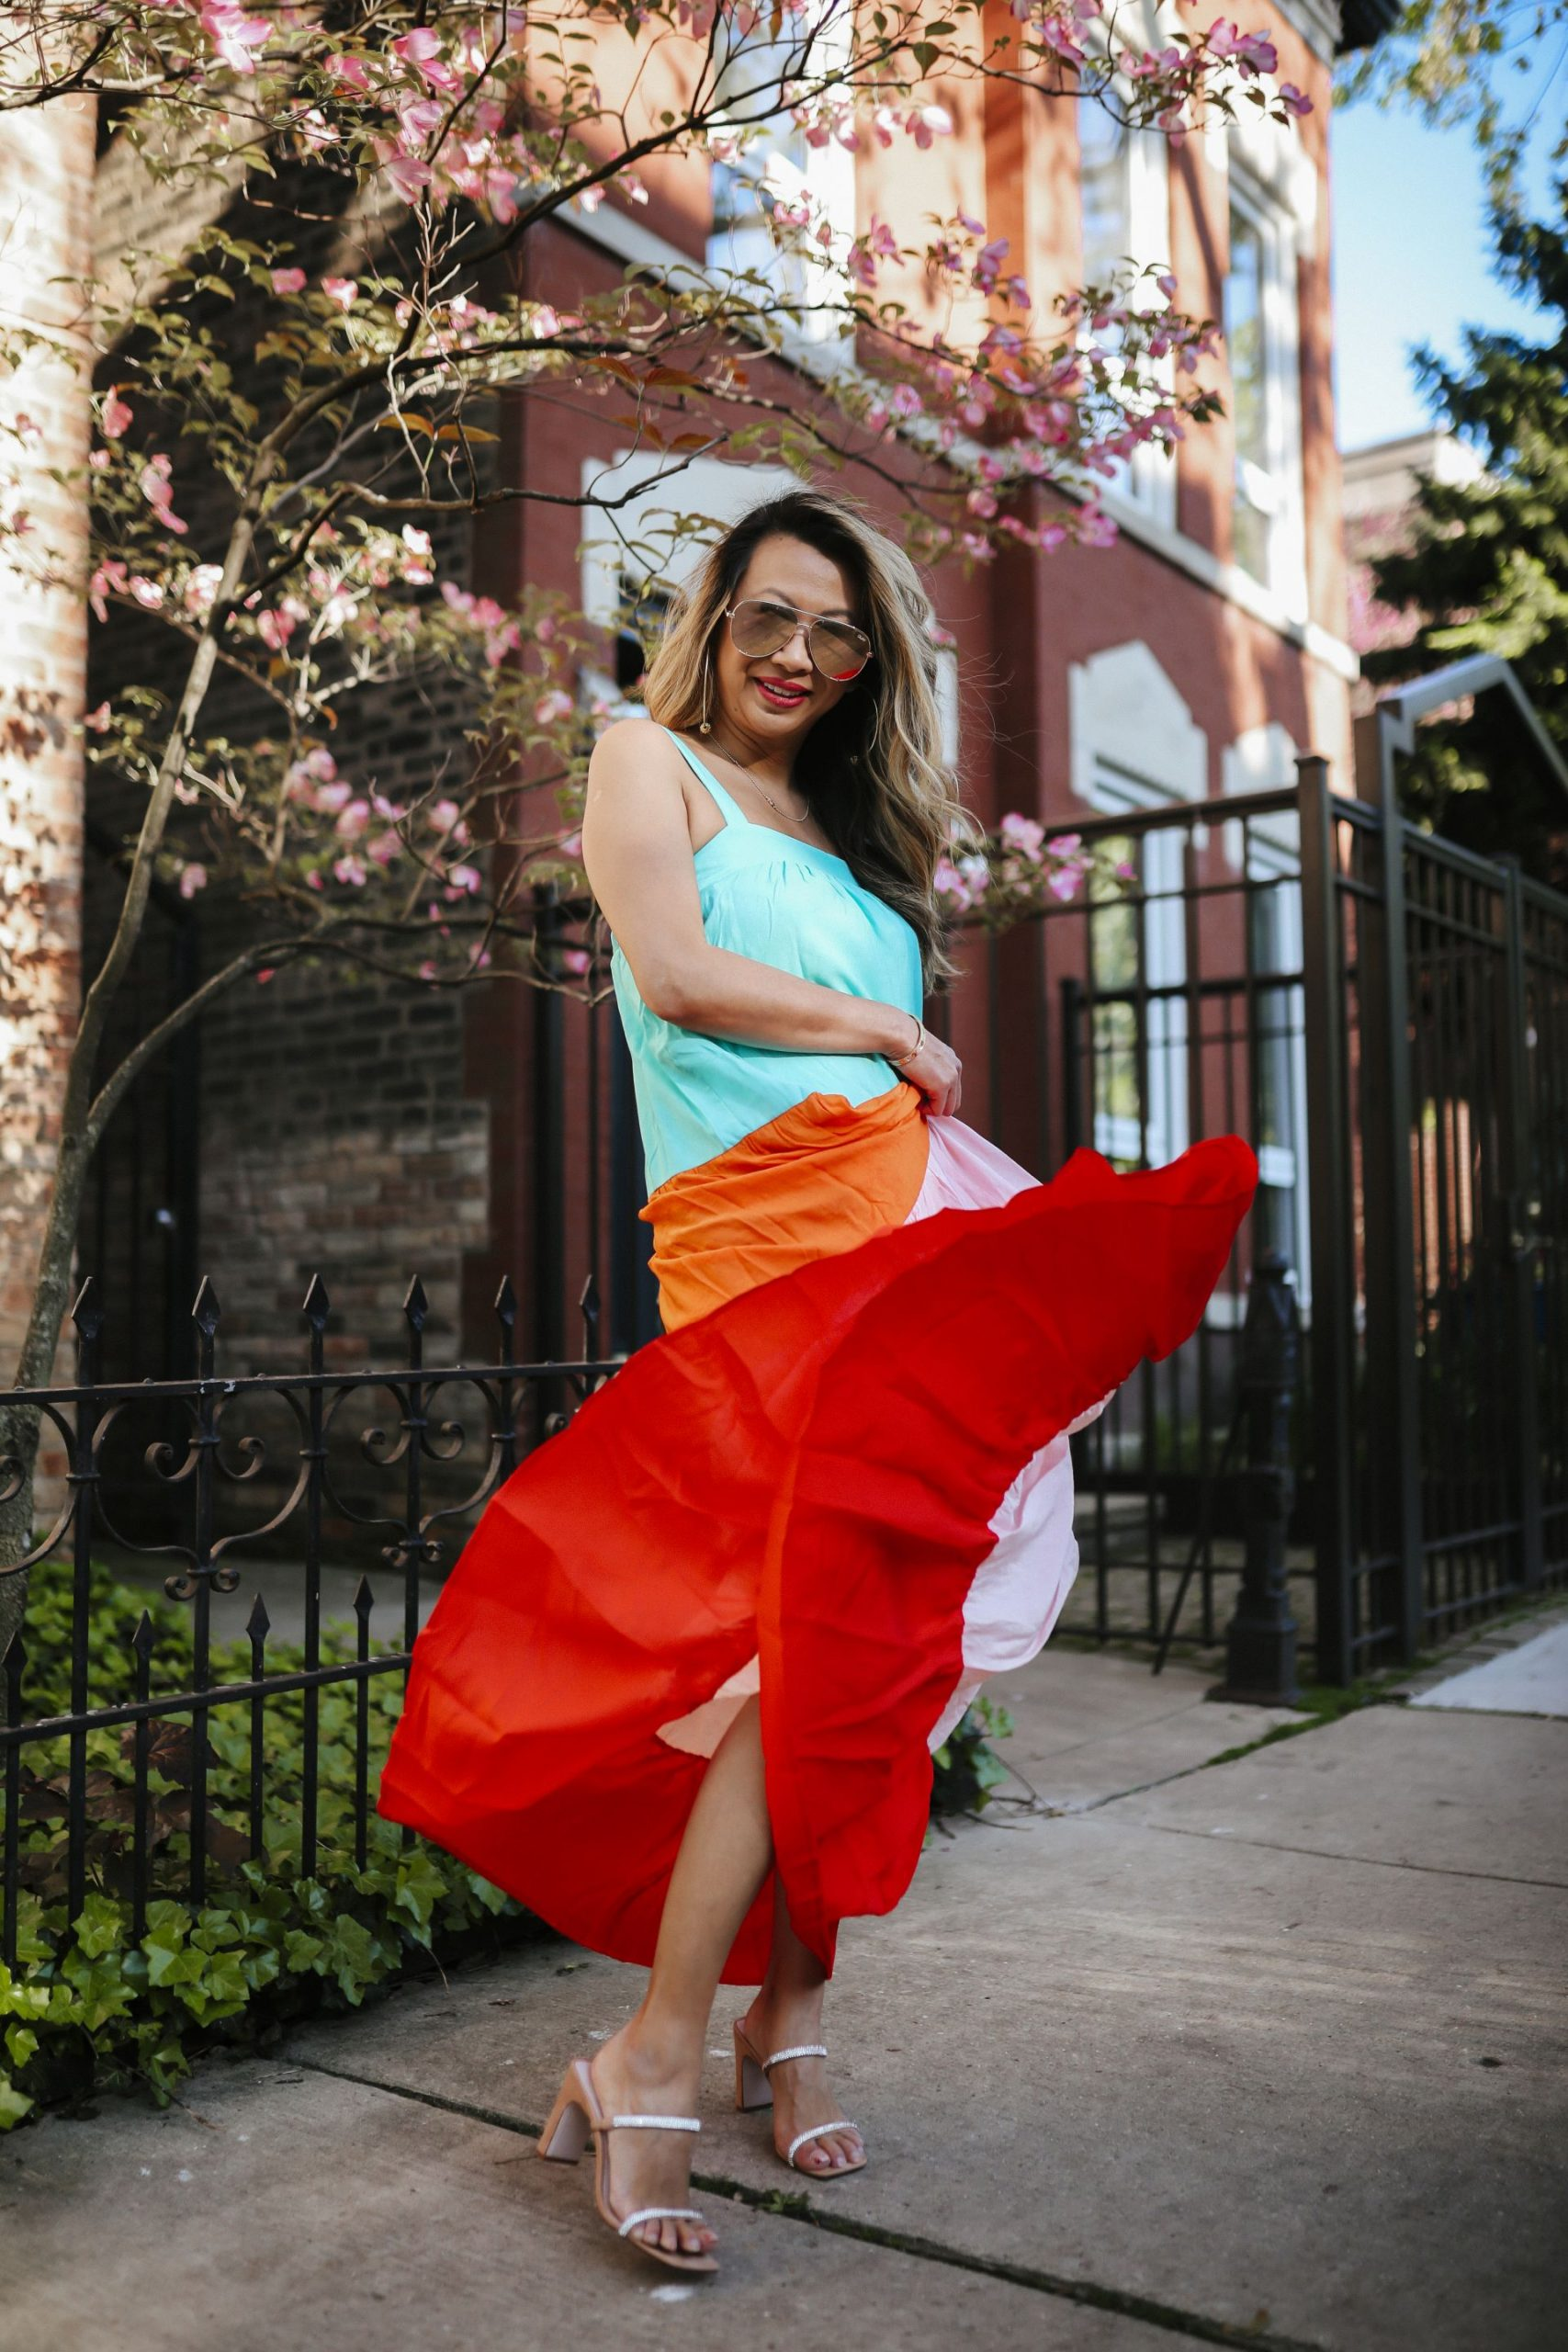 Easy summer dresses under $100, fun dresses for Summer, colorful summer dresses, colorful dress outfit ideas, how to style a colorful maxi dress for Summer, red dress tiered dress